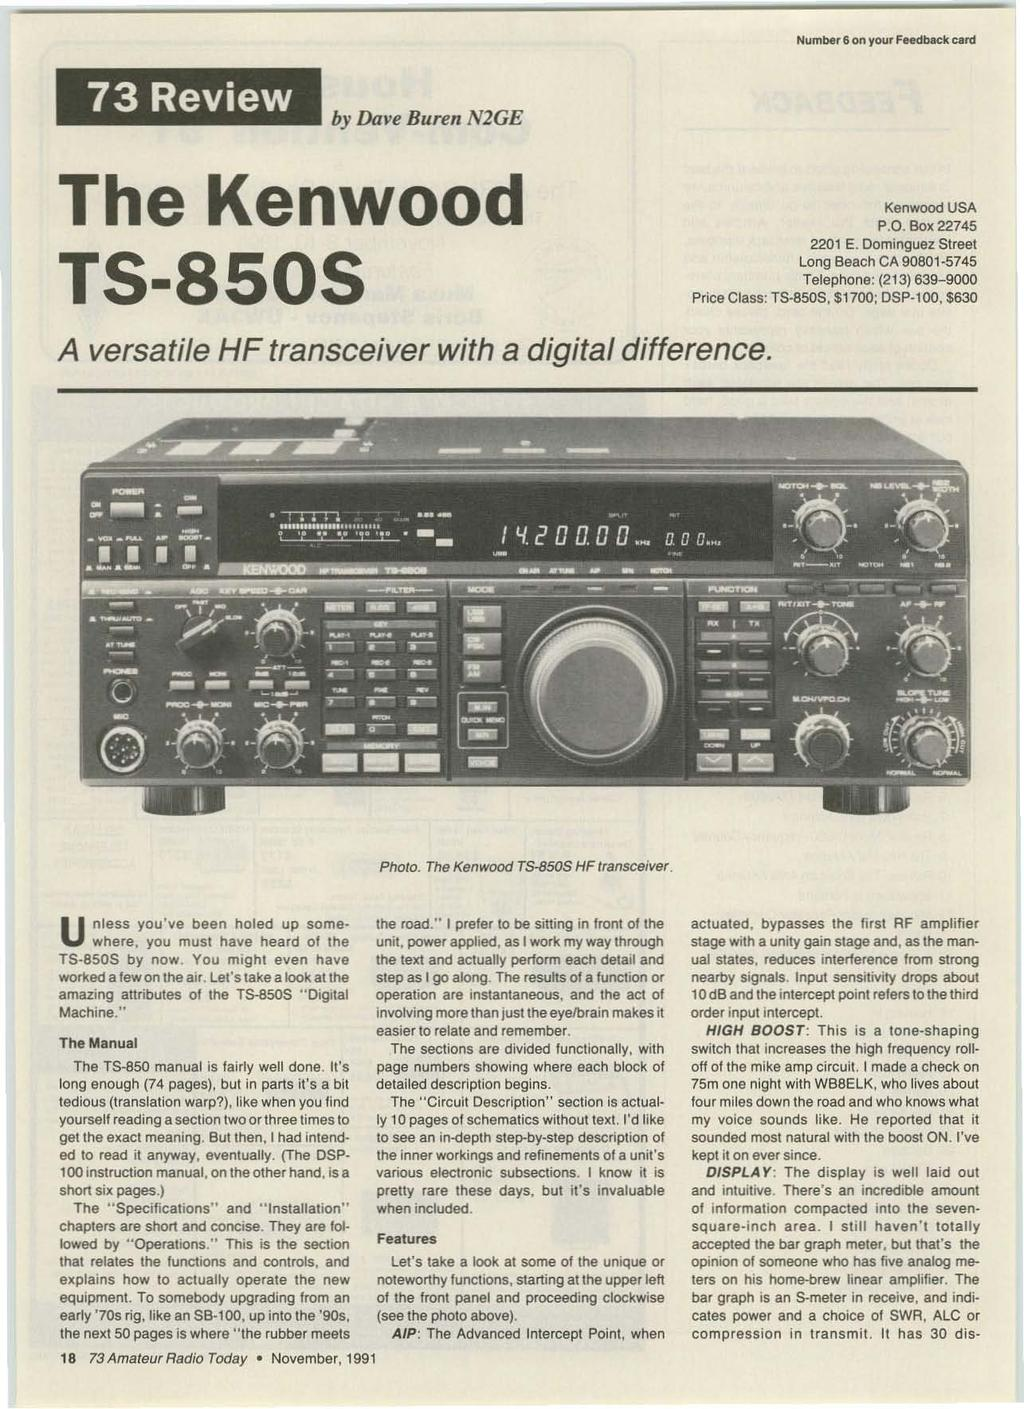 """ Number6 on your Feed back card 73 Review by Dave Buren N2GE The Kenwood T5-8505 Kenwood USA P.O. Box 22745 2201 E."